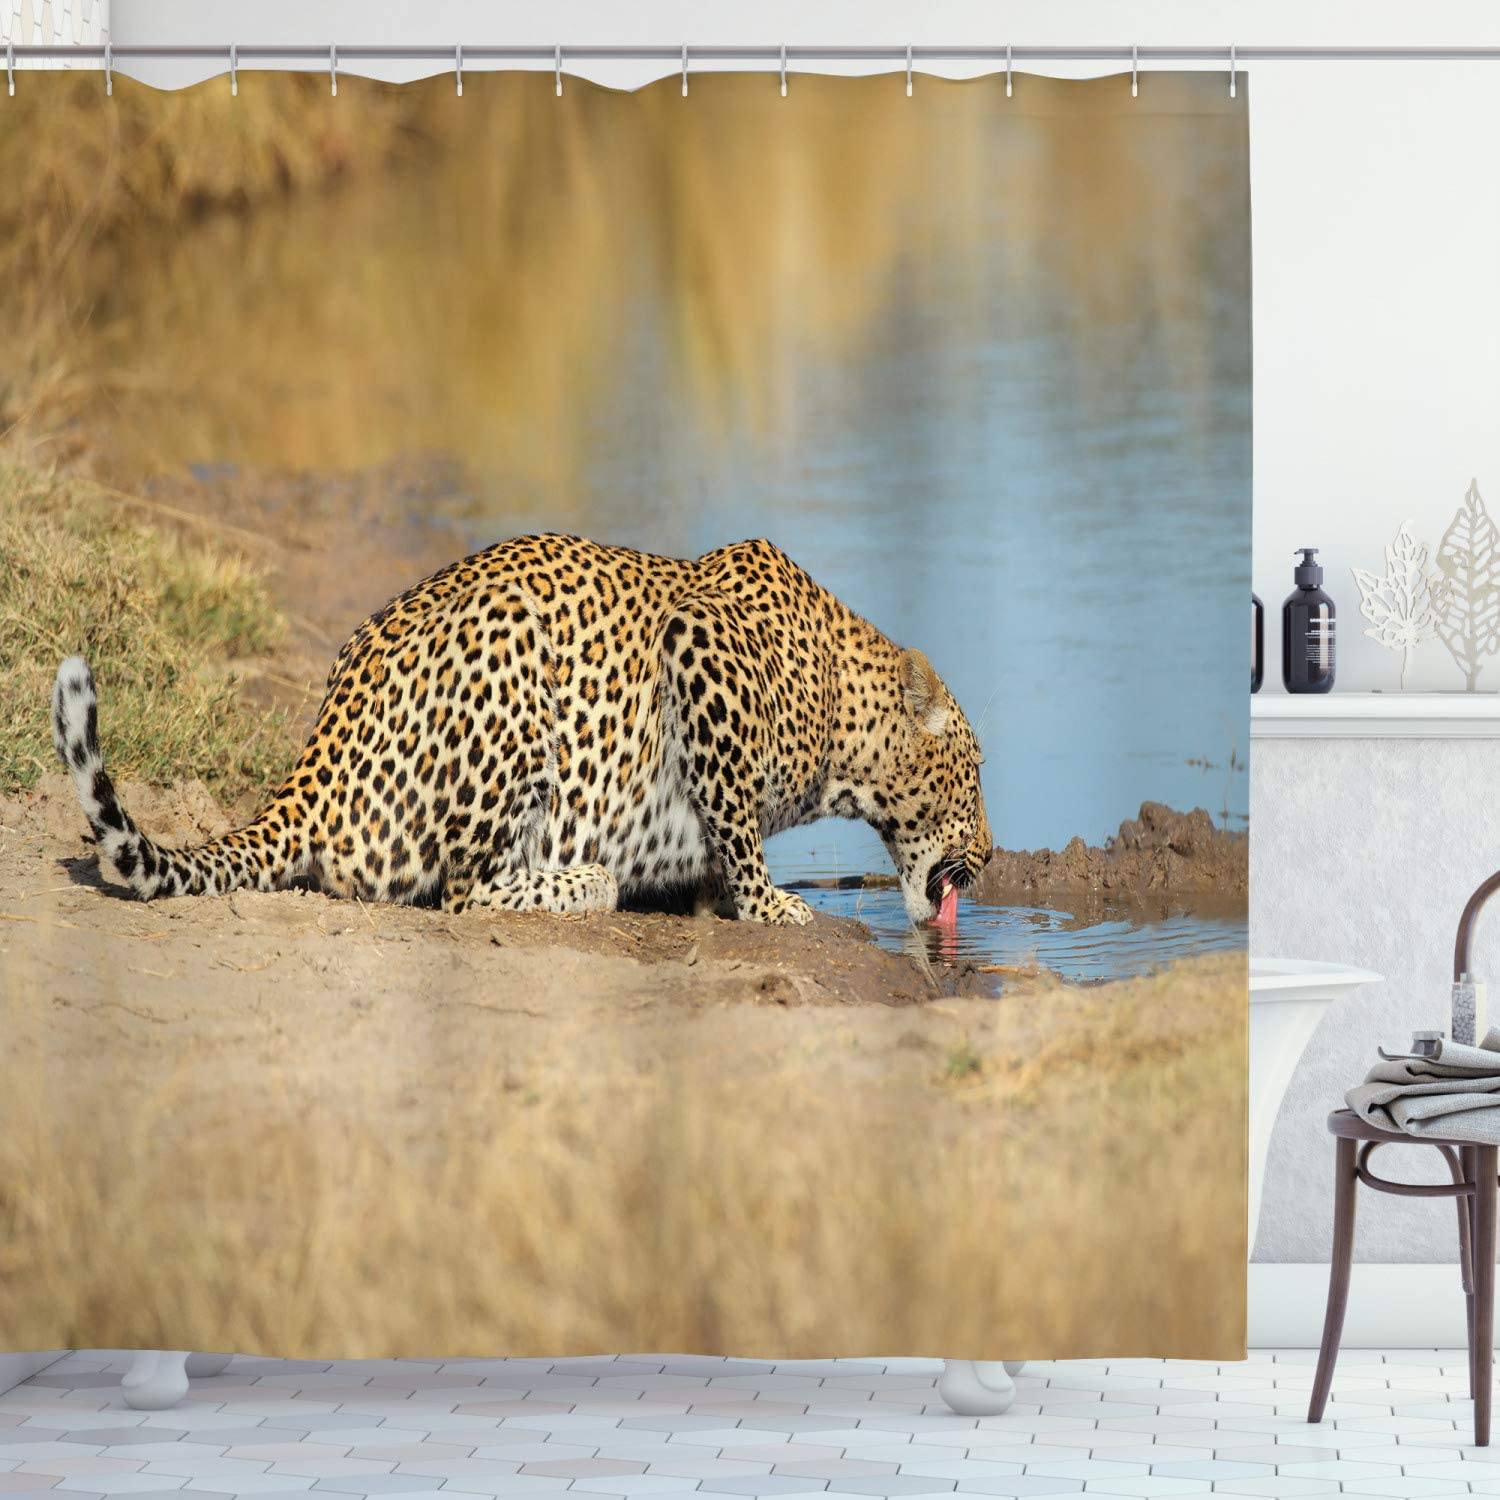 Amazon Com Ambesonne Safari Shower Curtain Leopard Panther Drinking At Waterhole Wild South Animal Documentary Print Cloth Fabric Bathroom Decor Set With Hooks 84 Long Extra Pale Brown Home Kitchen